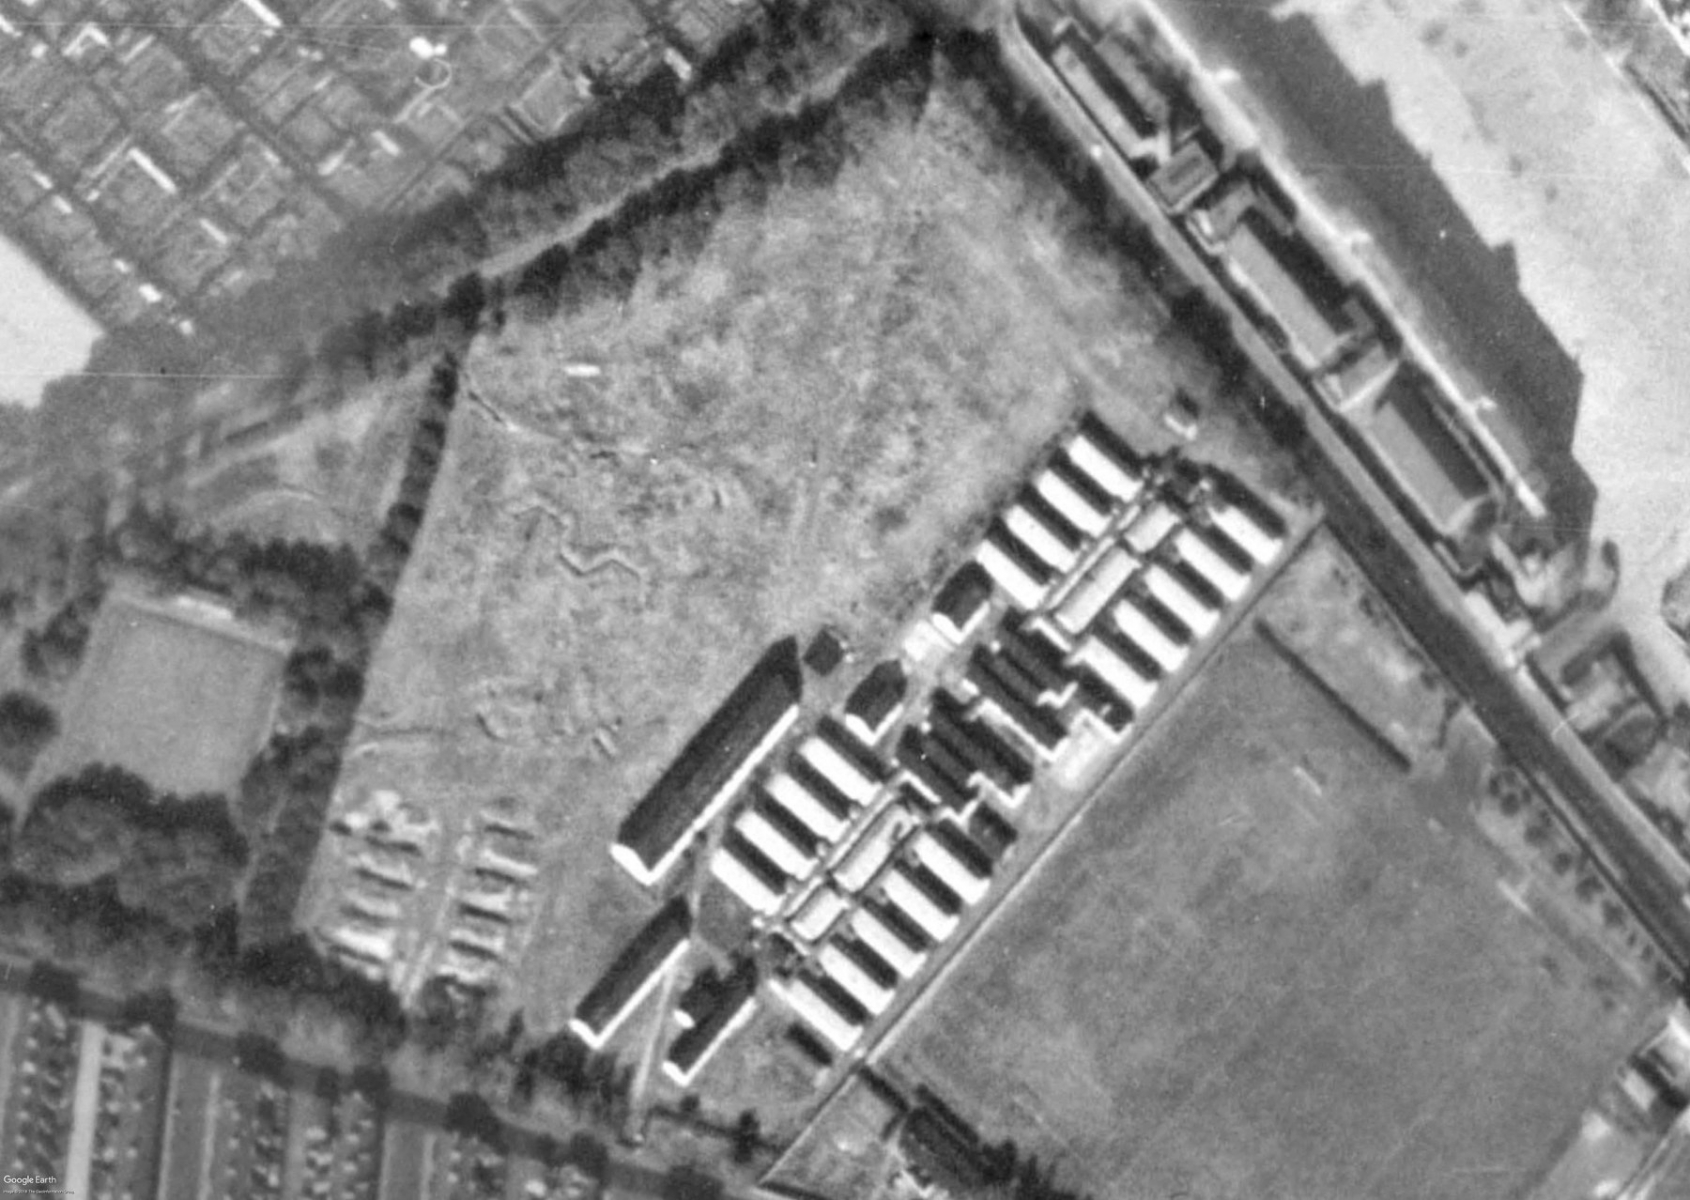 A 1947 aerial image showing the POW camp at Nuns Moor Park. The defensive trench system can be seen to the left.